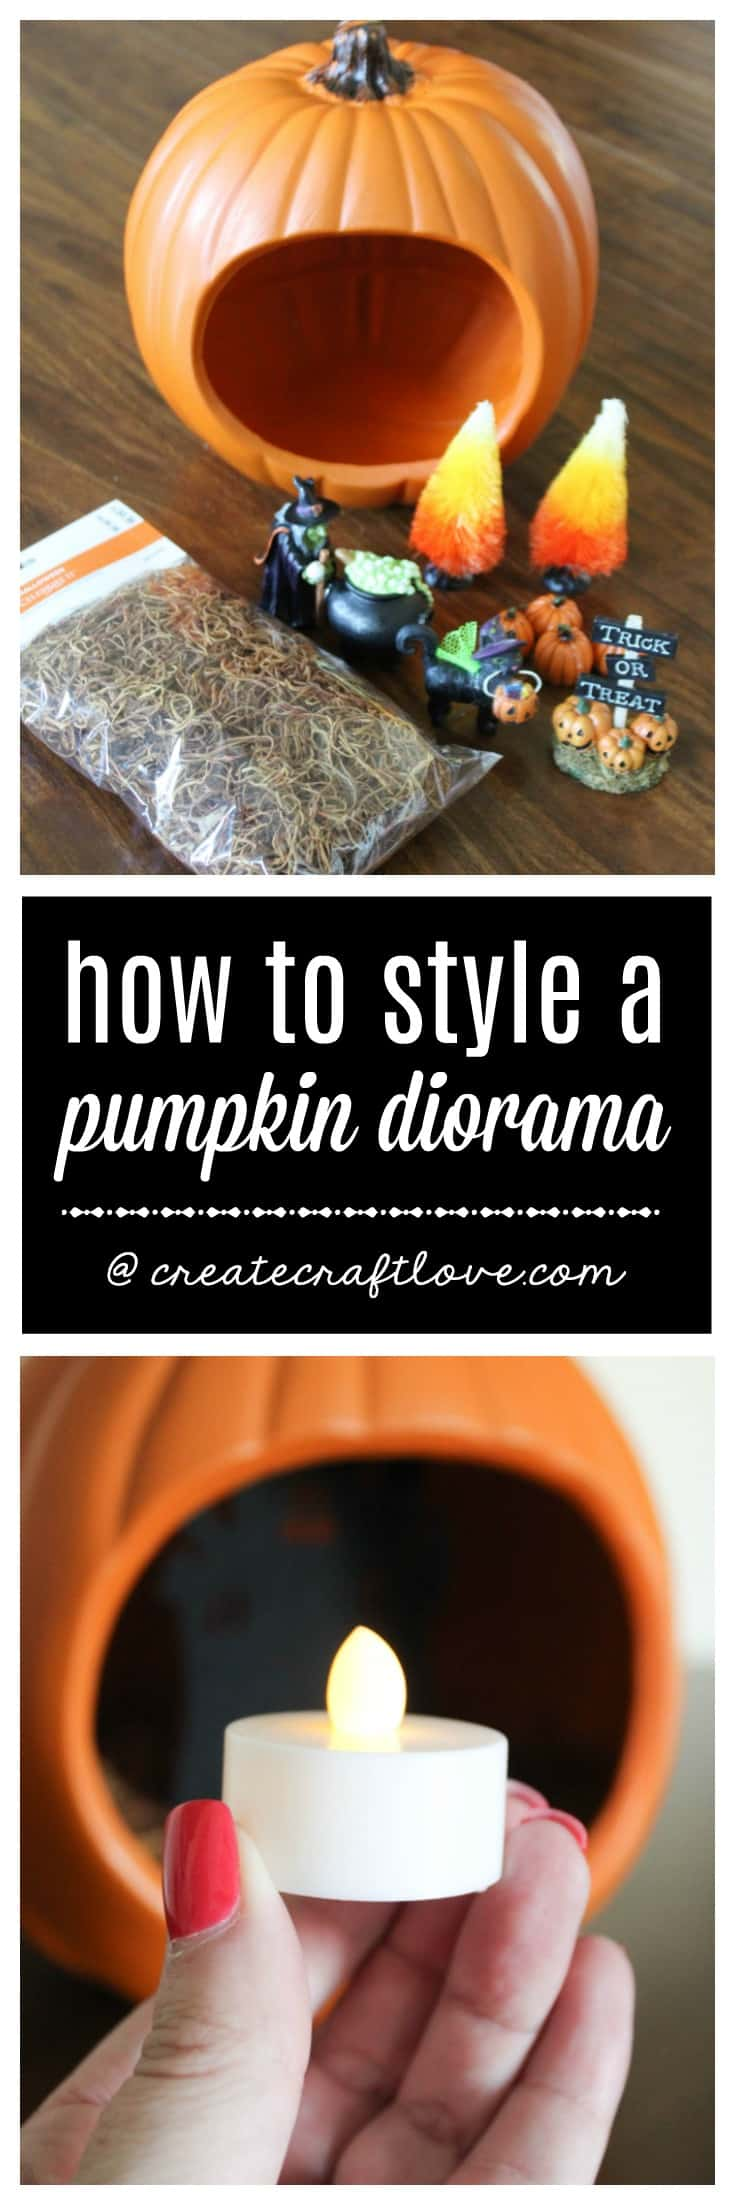 Create your own Pumpkin Diorama this fall for a new twist on traditional Halloween decorating!